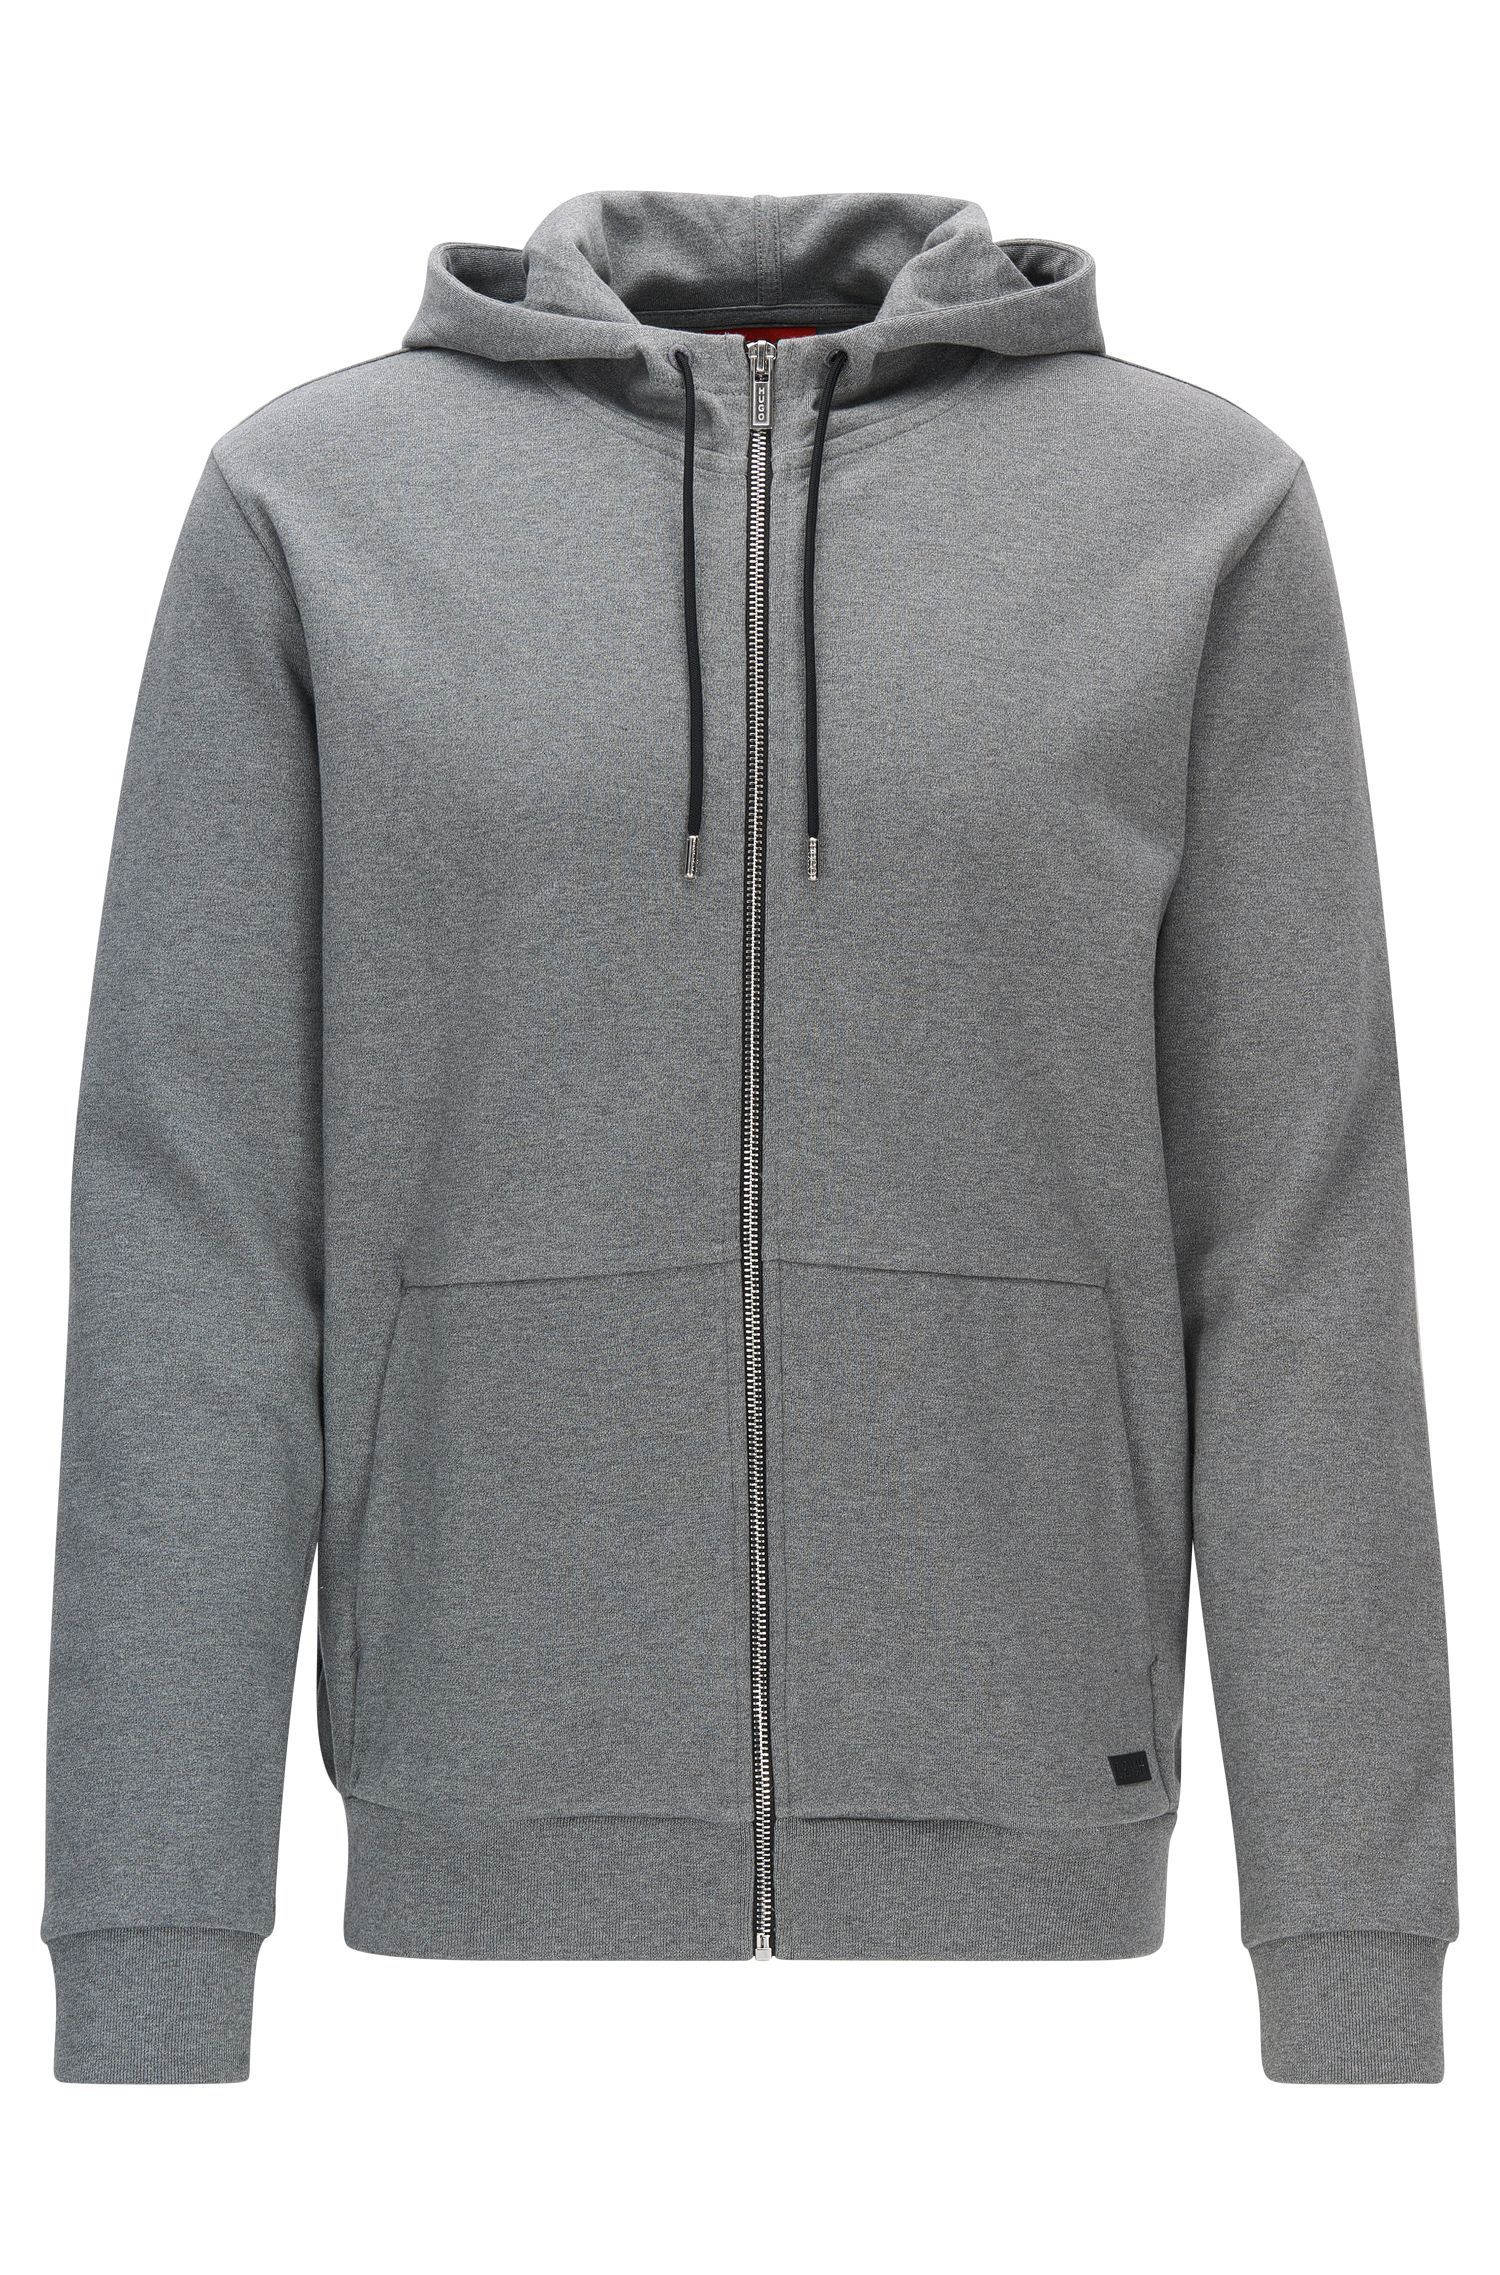 Cotton Full-Zip Hooded Sweater | Dattis